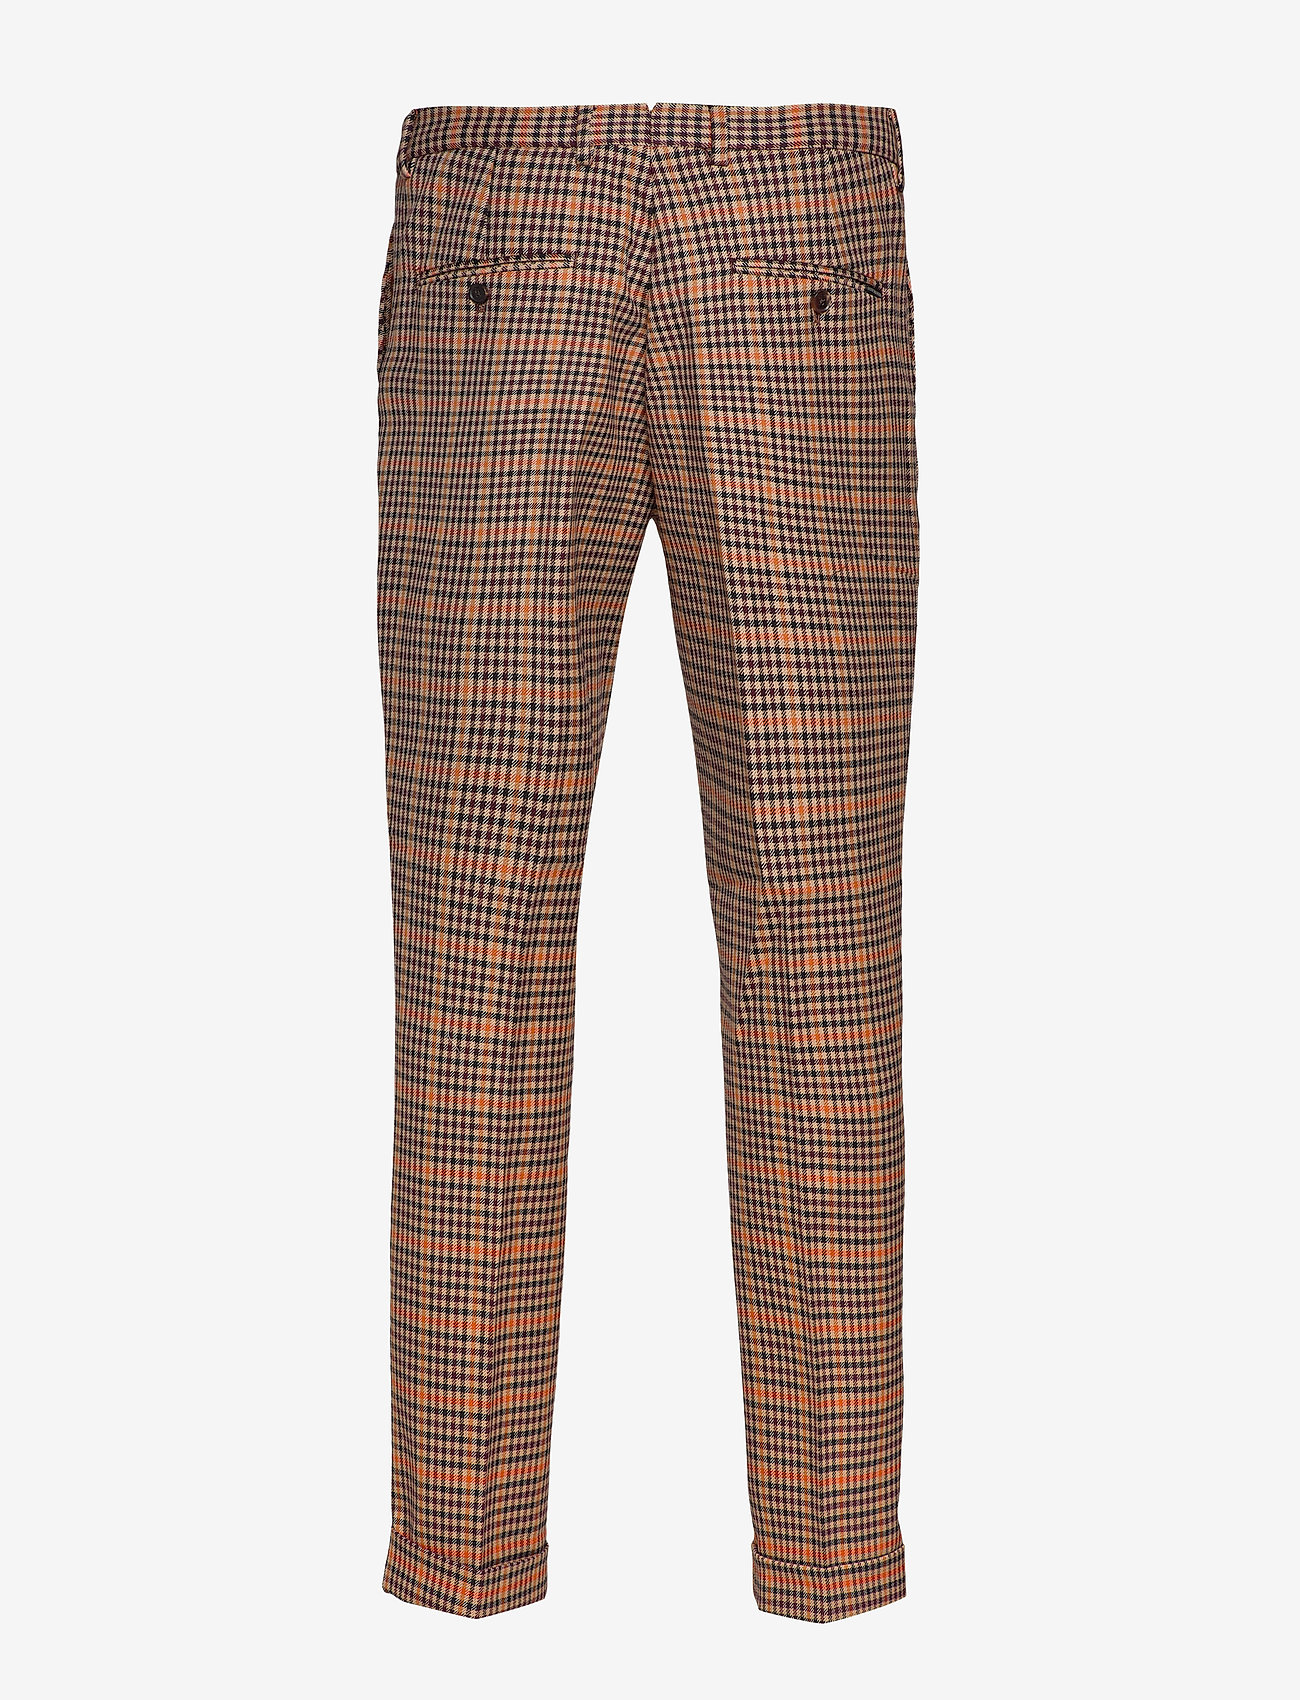 Scotch & Soda - SEASONAL FIT- Chic gentlemans chino in yarn-dyed pattern - suitbukser - combo b - 1